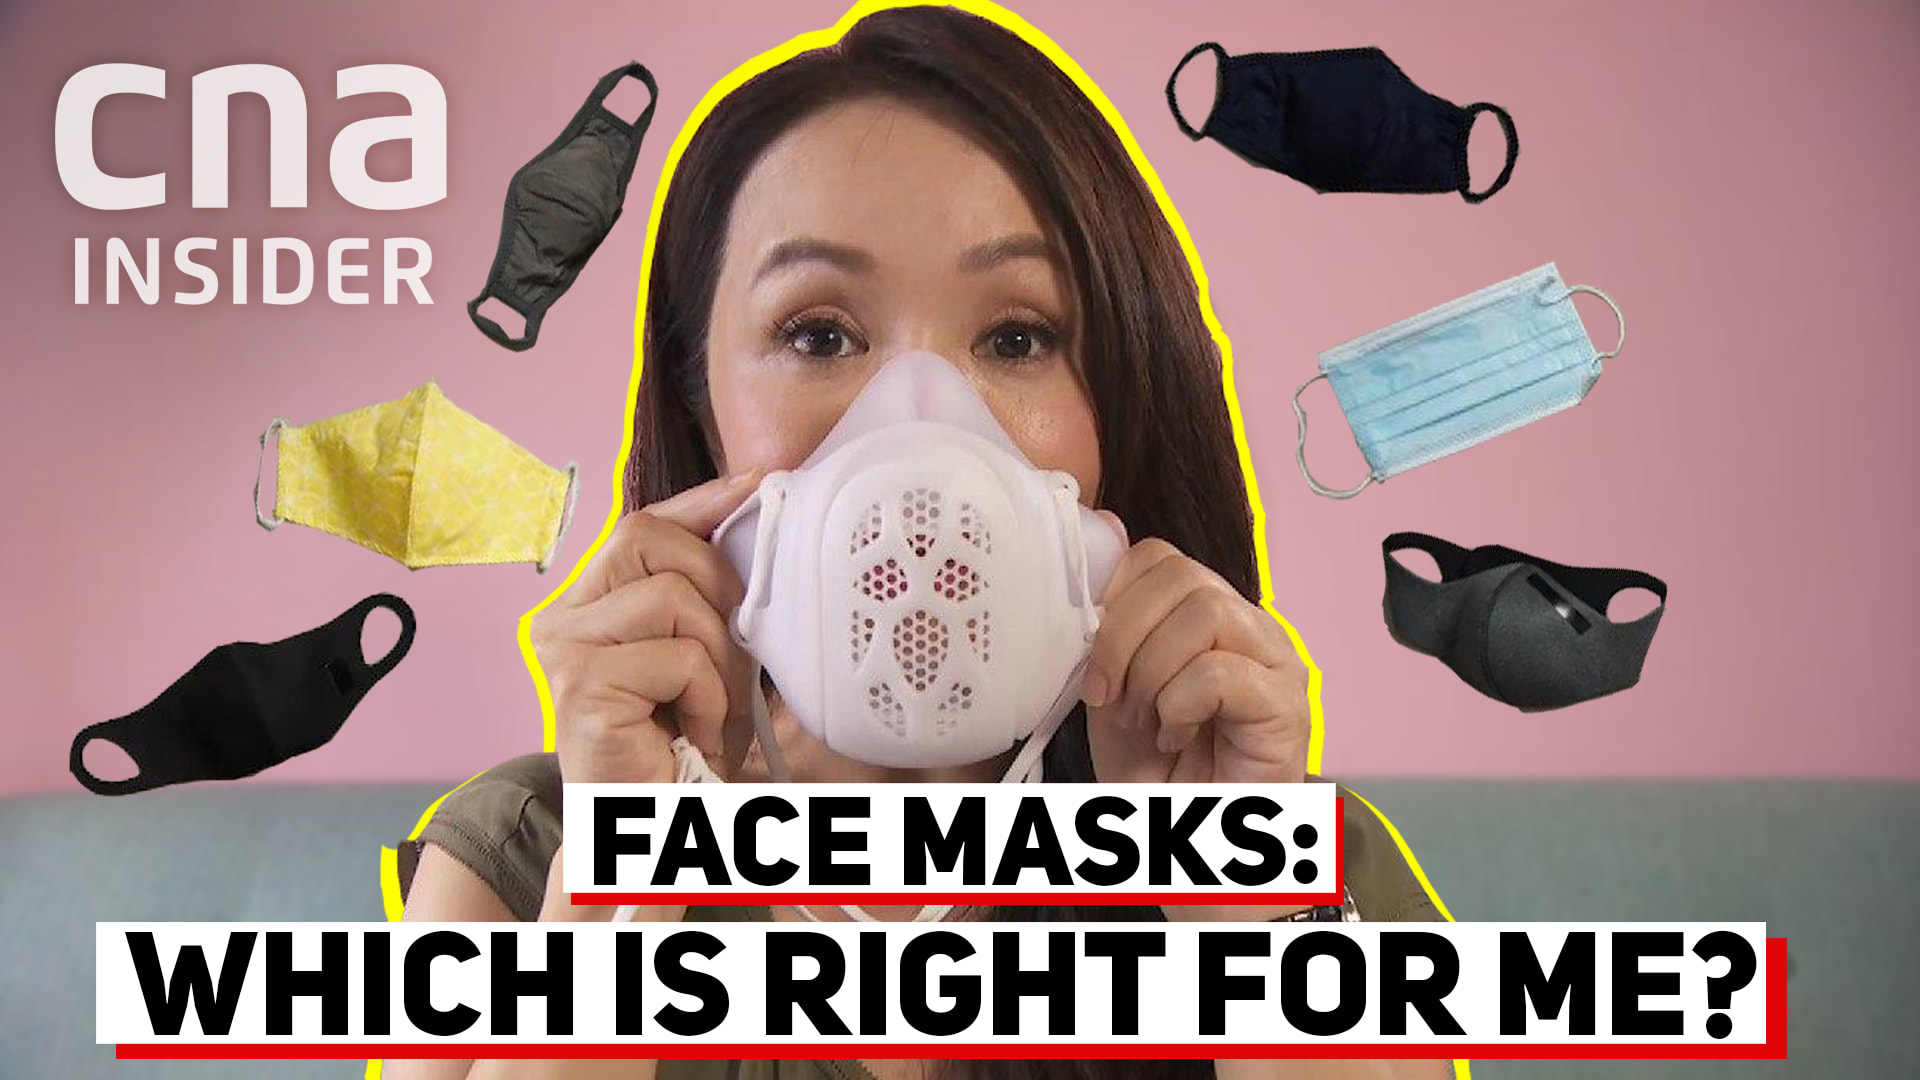 What kind of mask gives you the best protection?